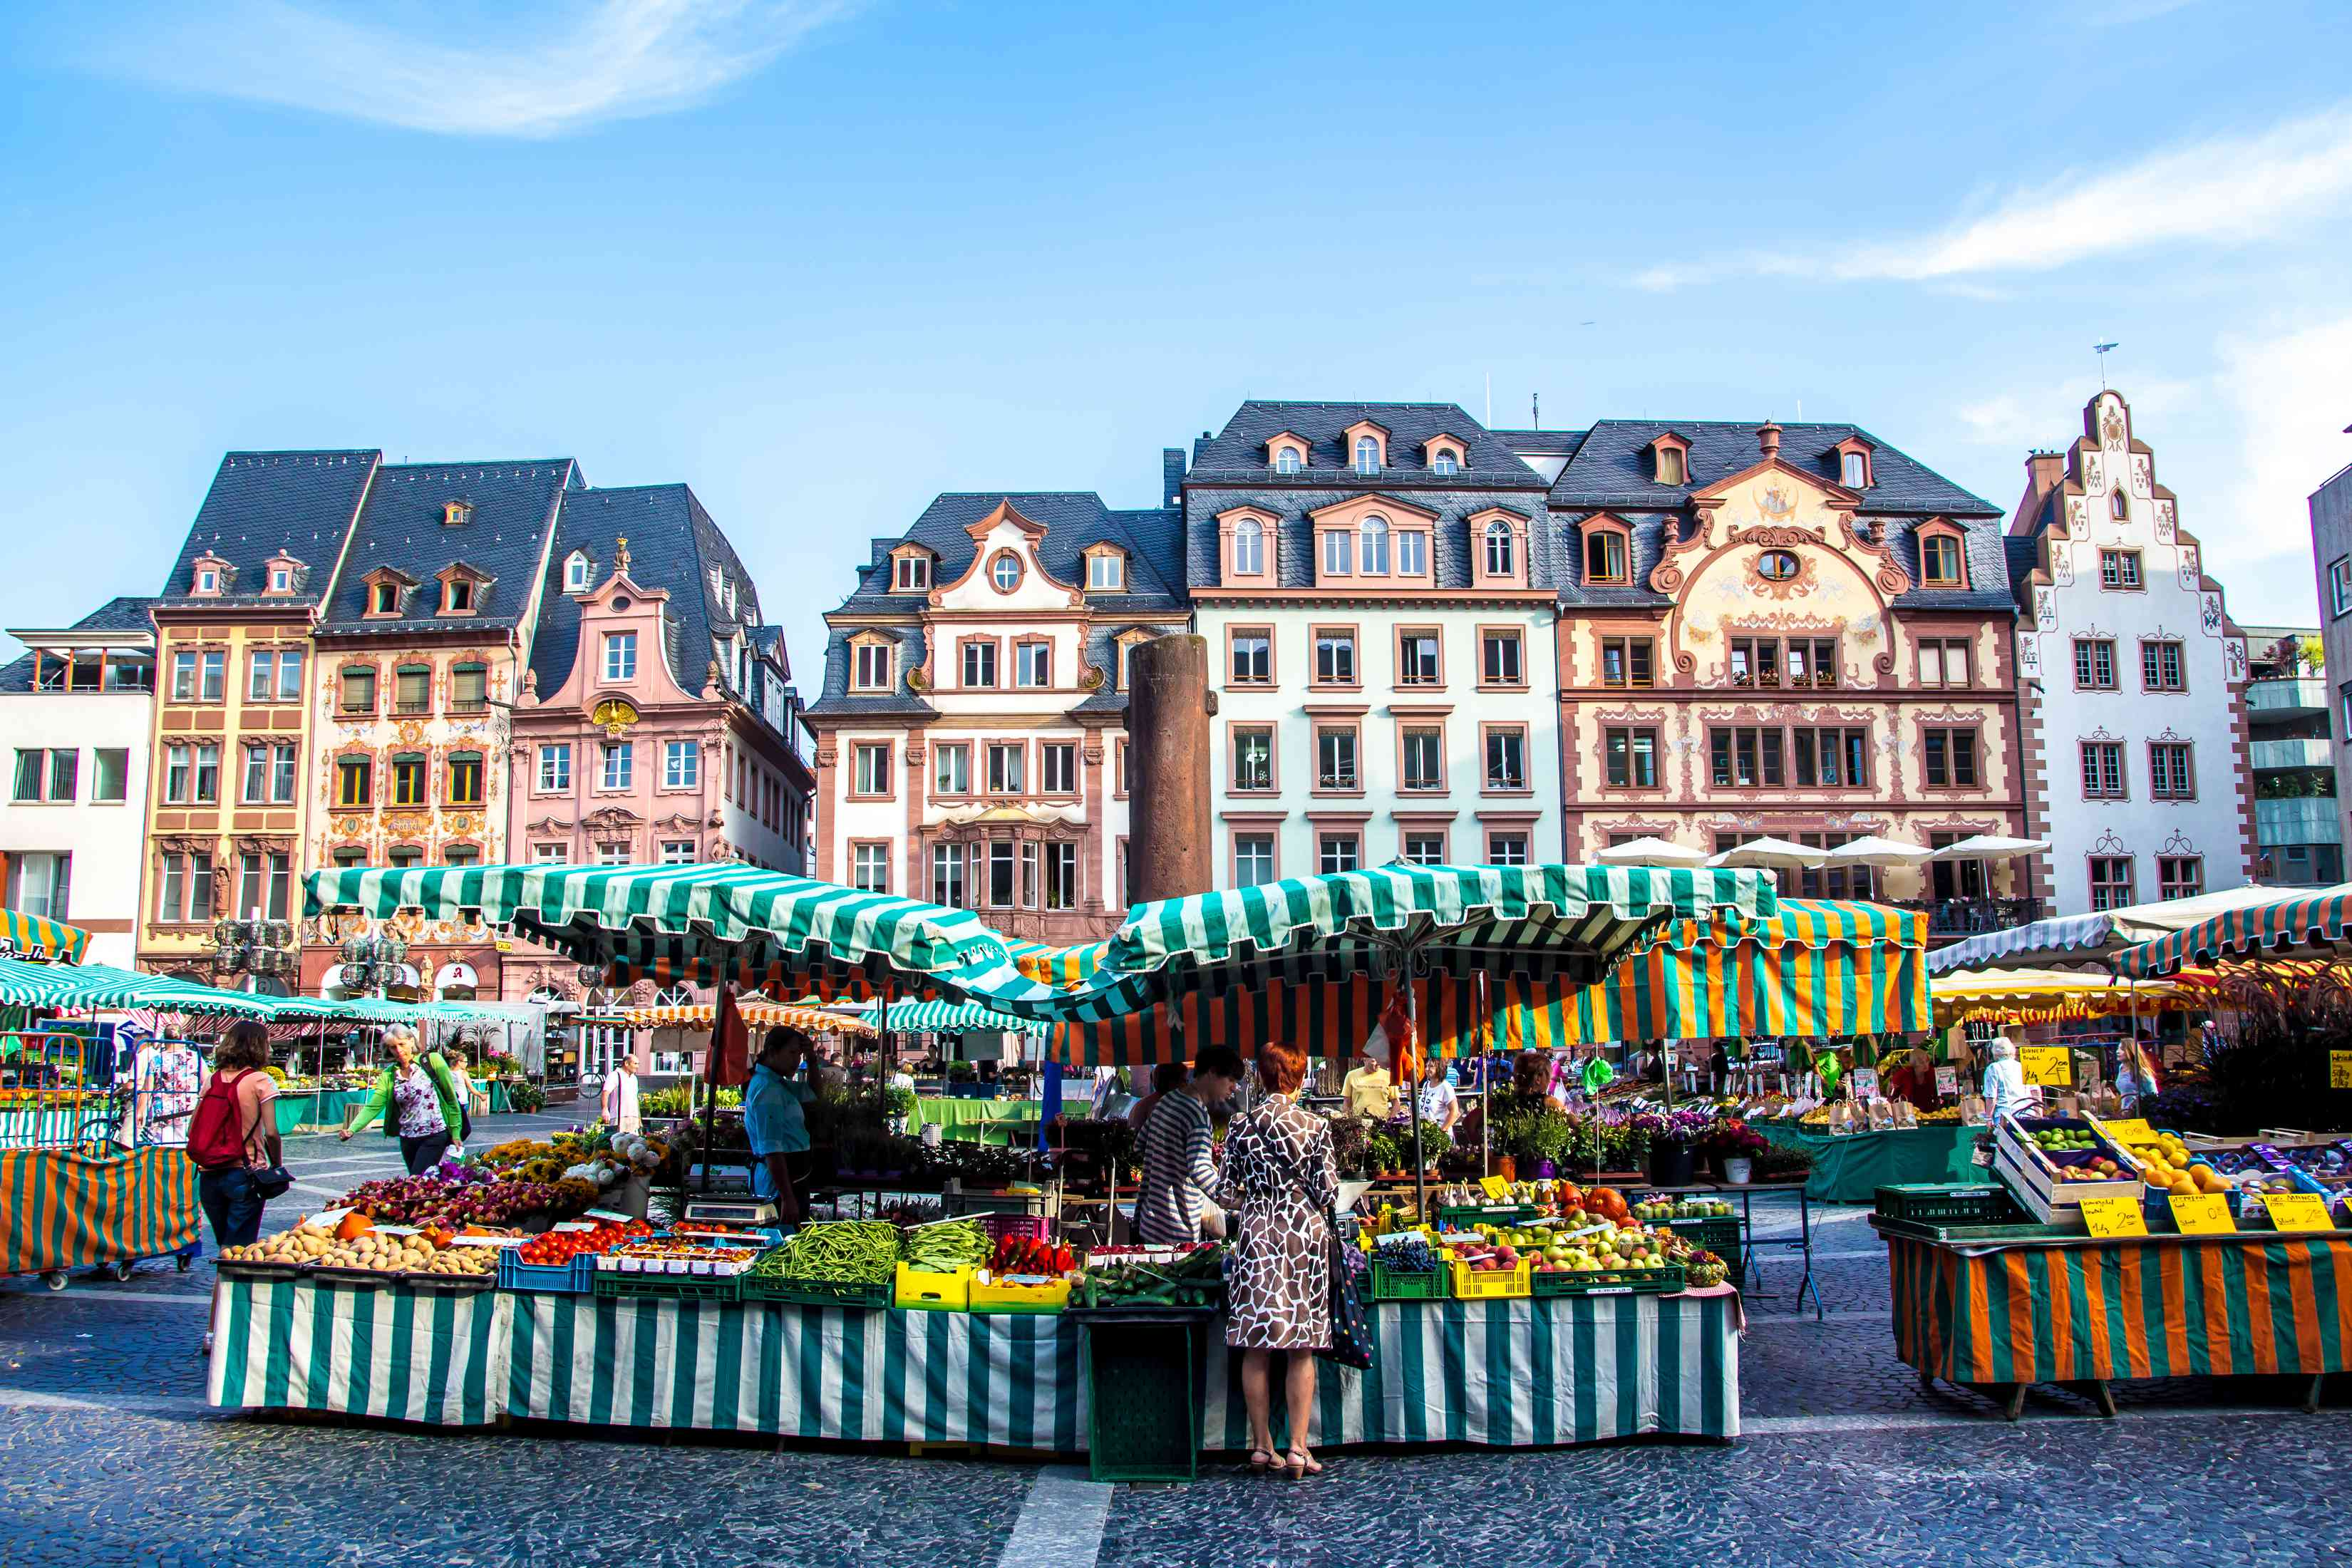 People shopping at colorful market stalls in mainz, Germany